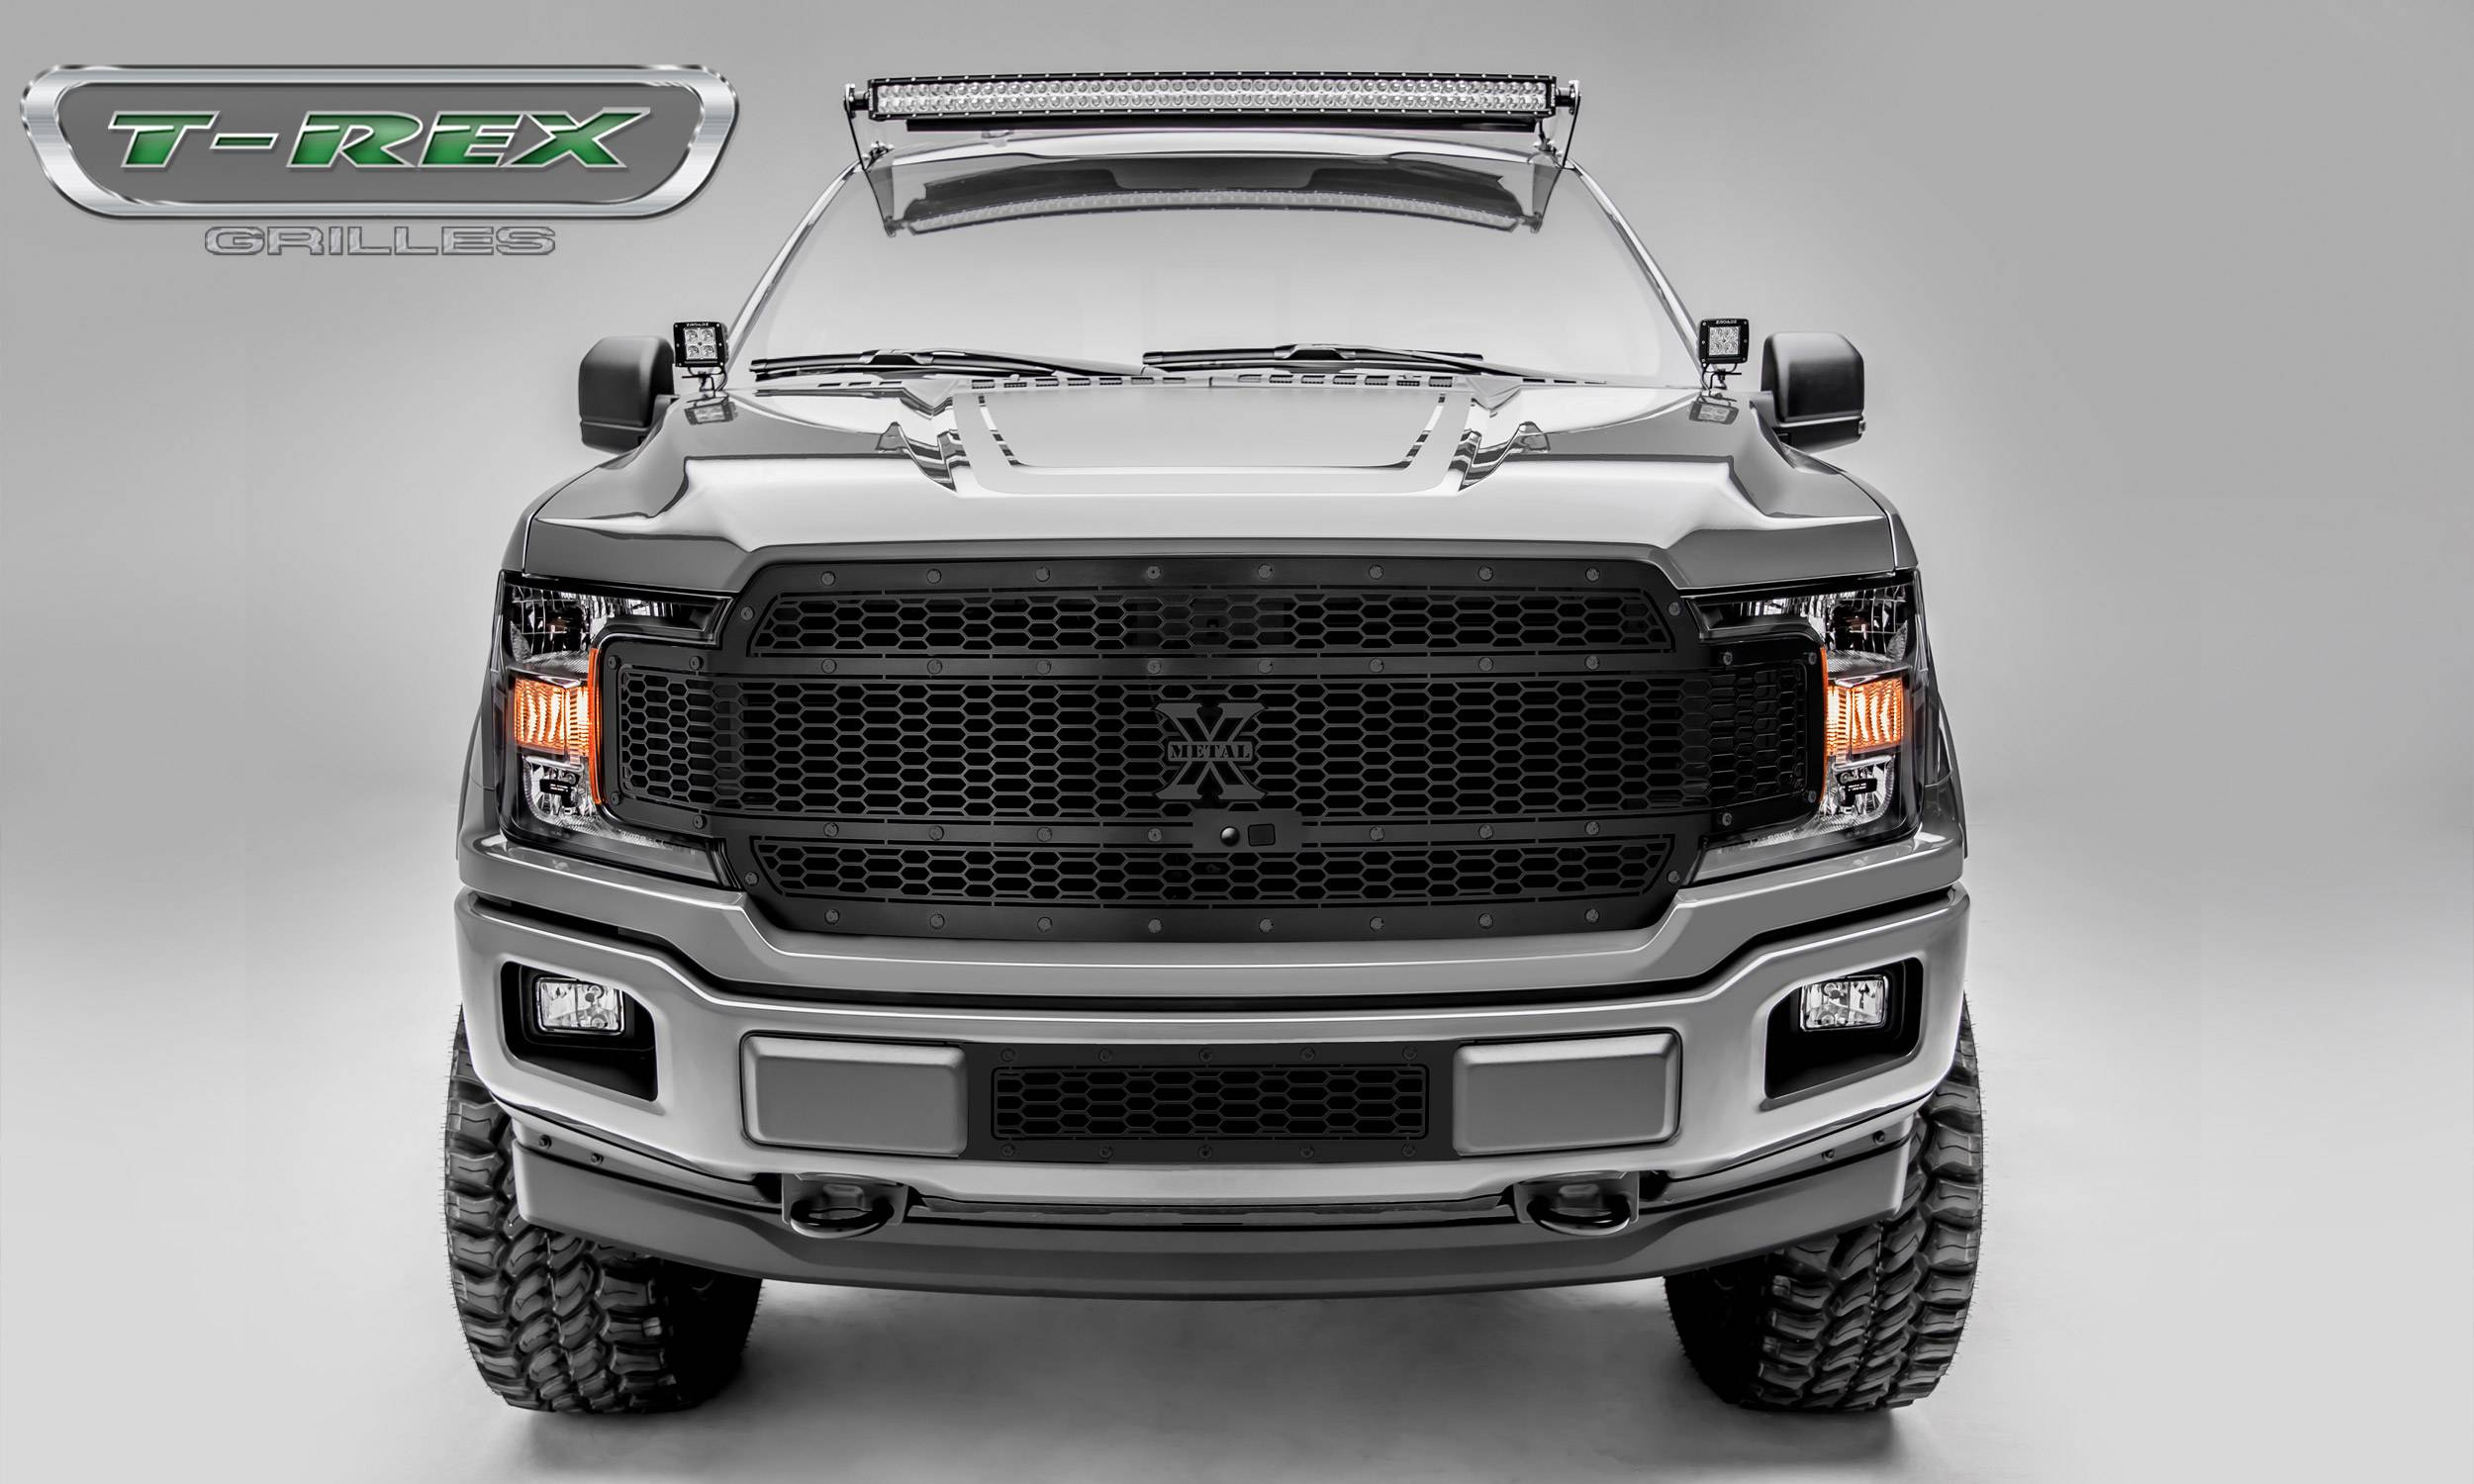 T-REX Grilles - T-REX Ford F-150 - Laser X-Metal STEALTH Series - Main Grille Replacement - Fits Vehicles w/ FFC - Laser Cut Steel Pattern - Black  - Pt # 7715891-BR